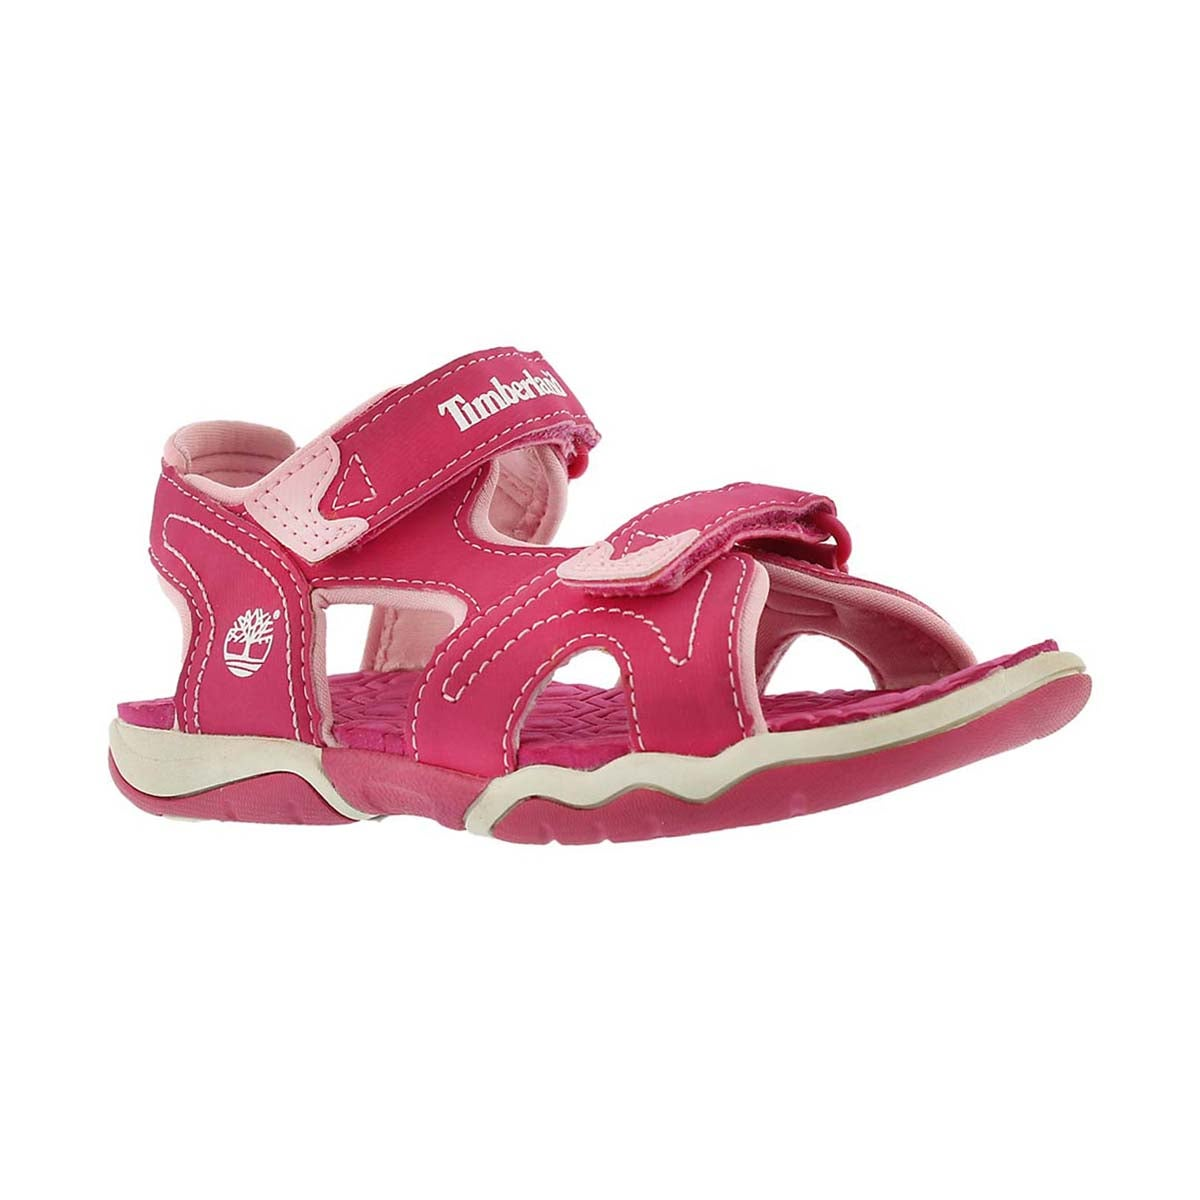 Girls' ADVENTURE SEEKER pink sport sandals